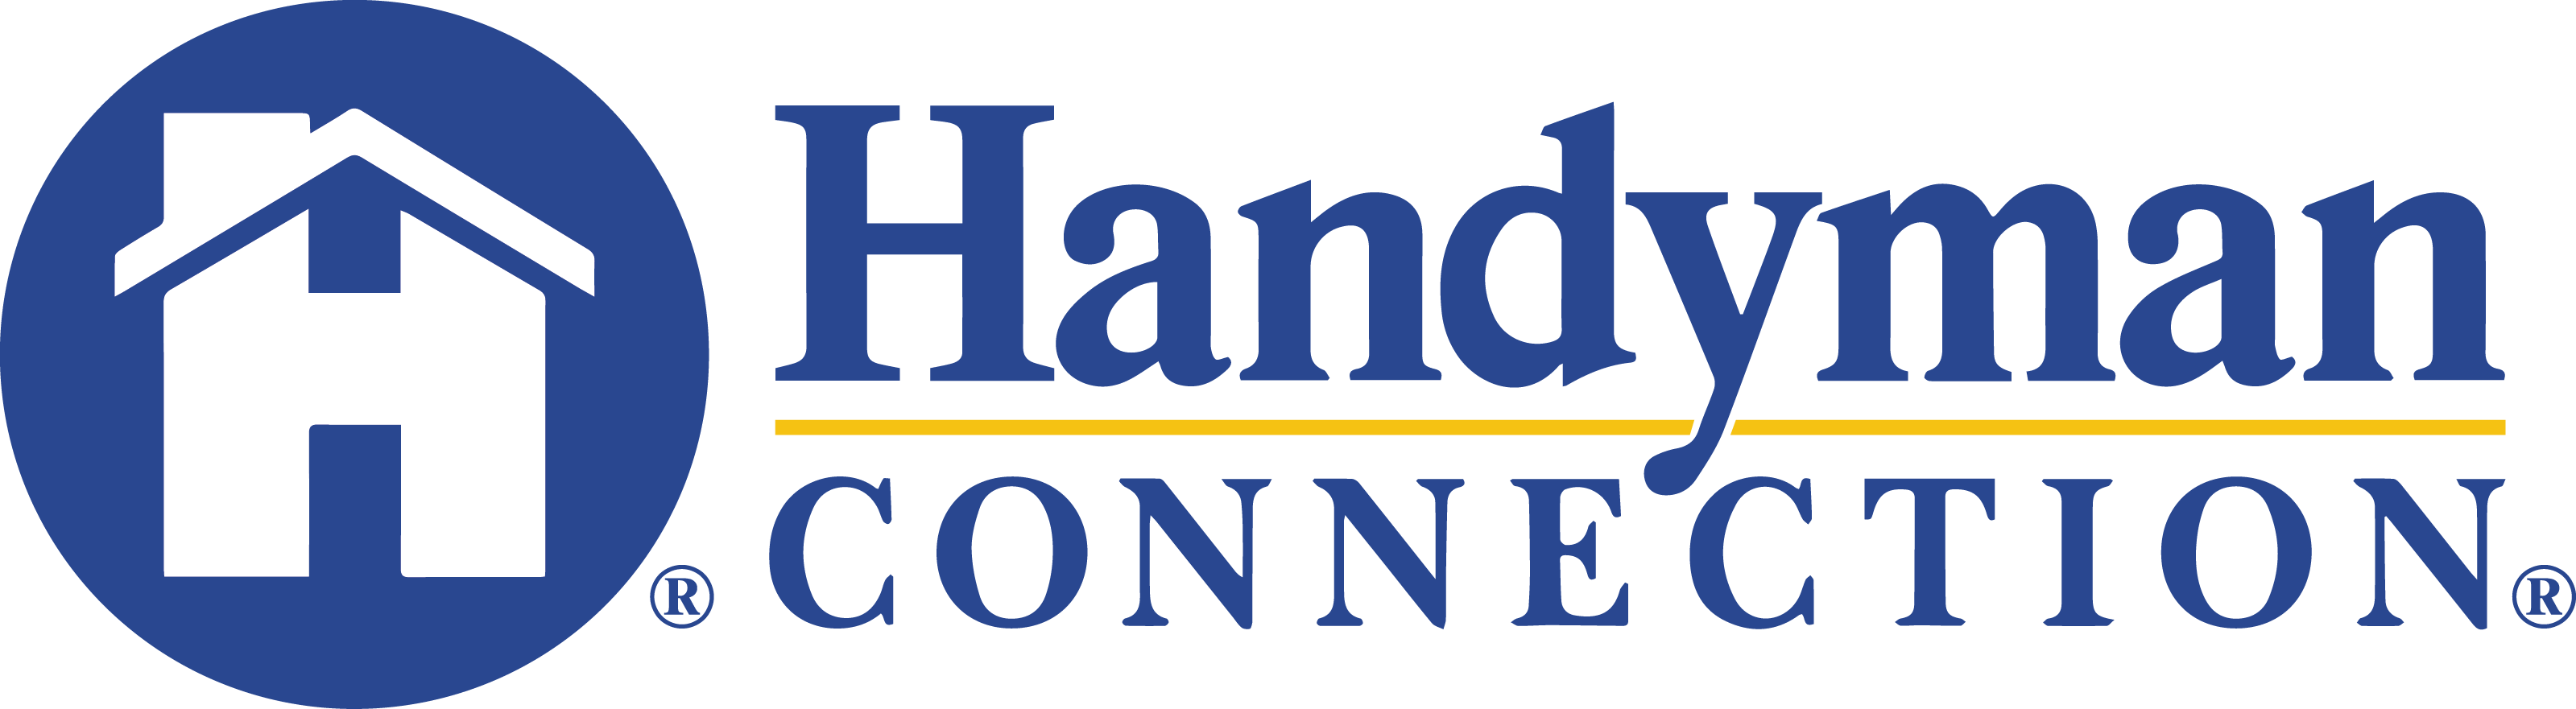 Handyman Connection of York, ON